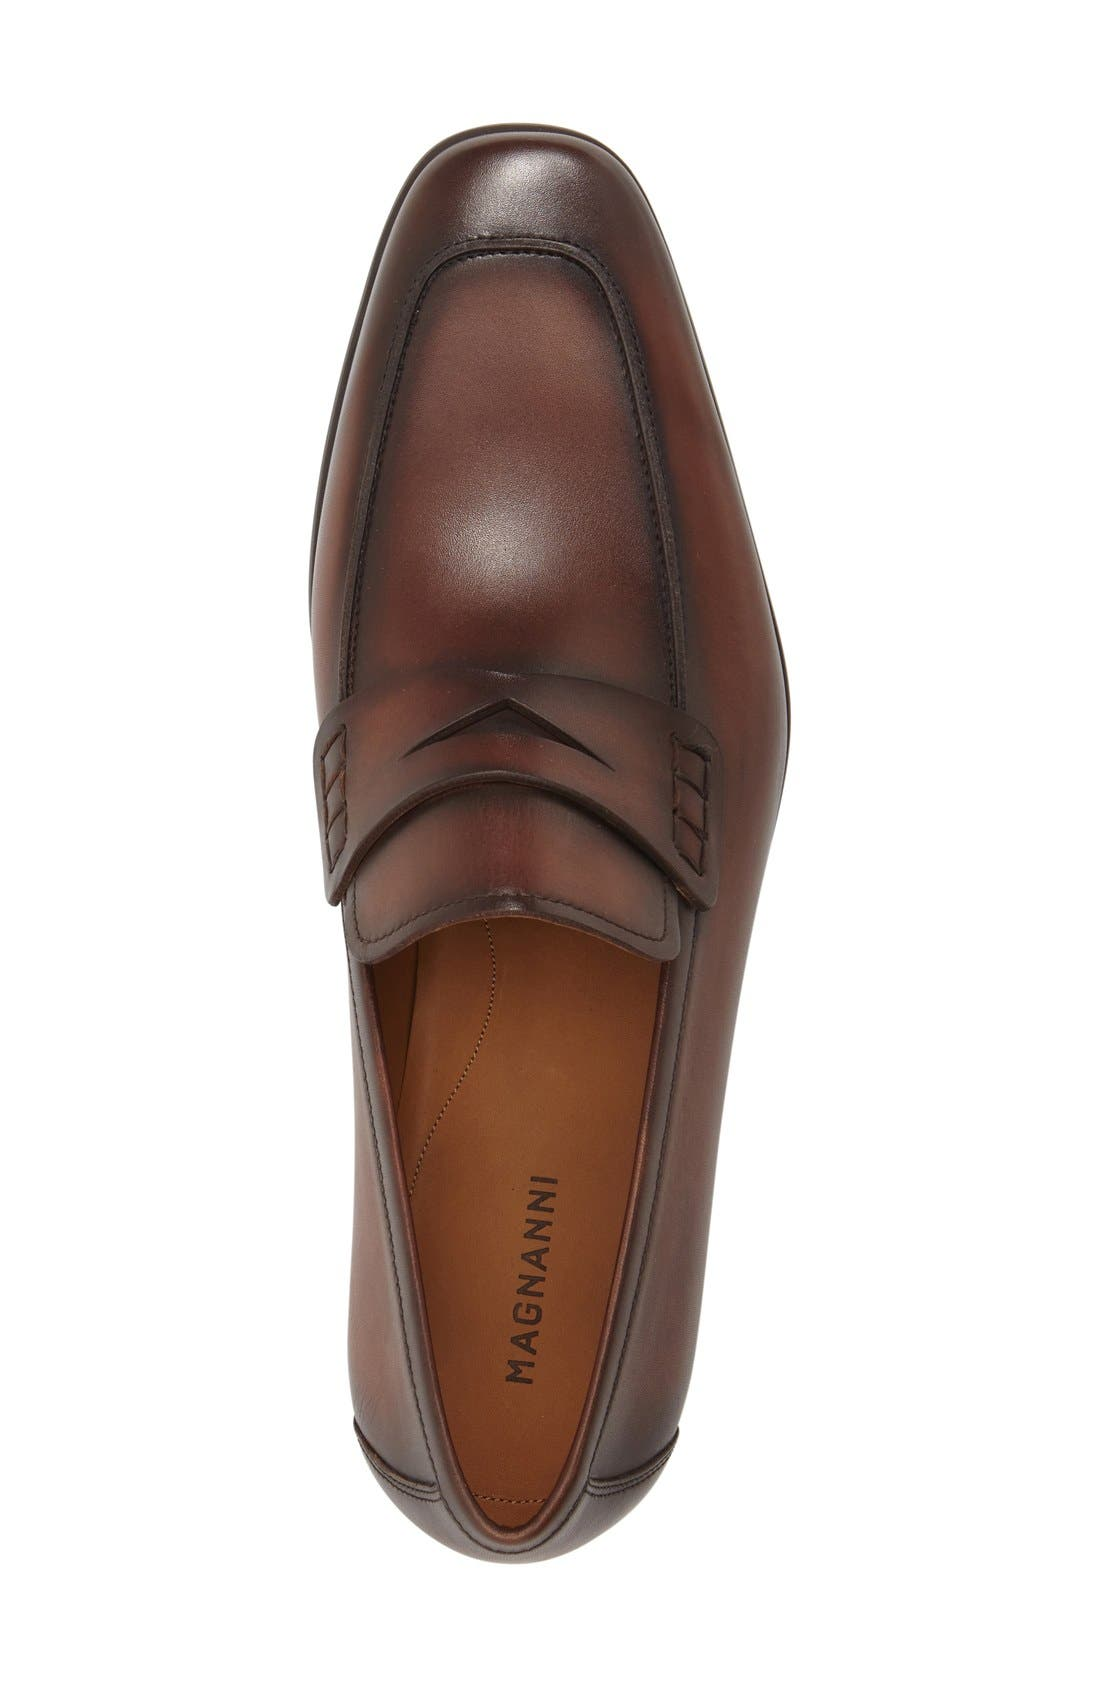 Alternate Image 3  - Magnanni 'Ramiro II' Penny Loafer (Men)